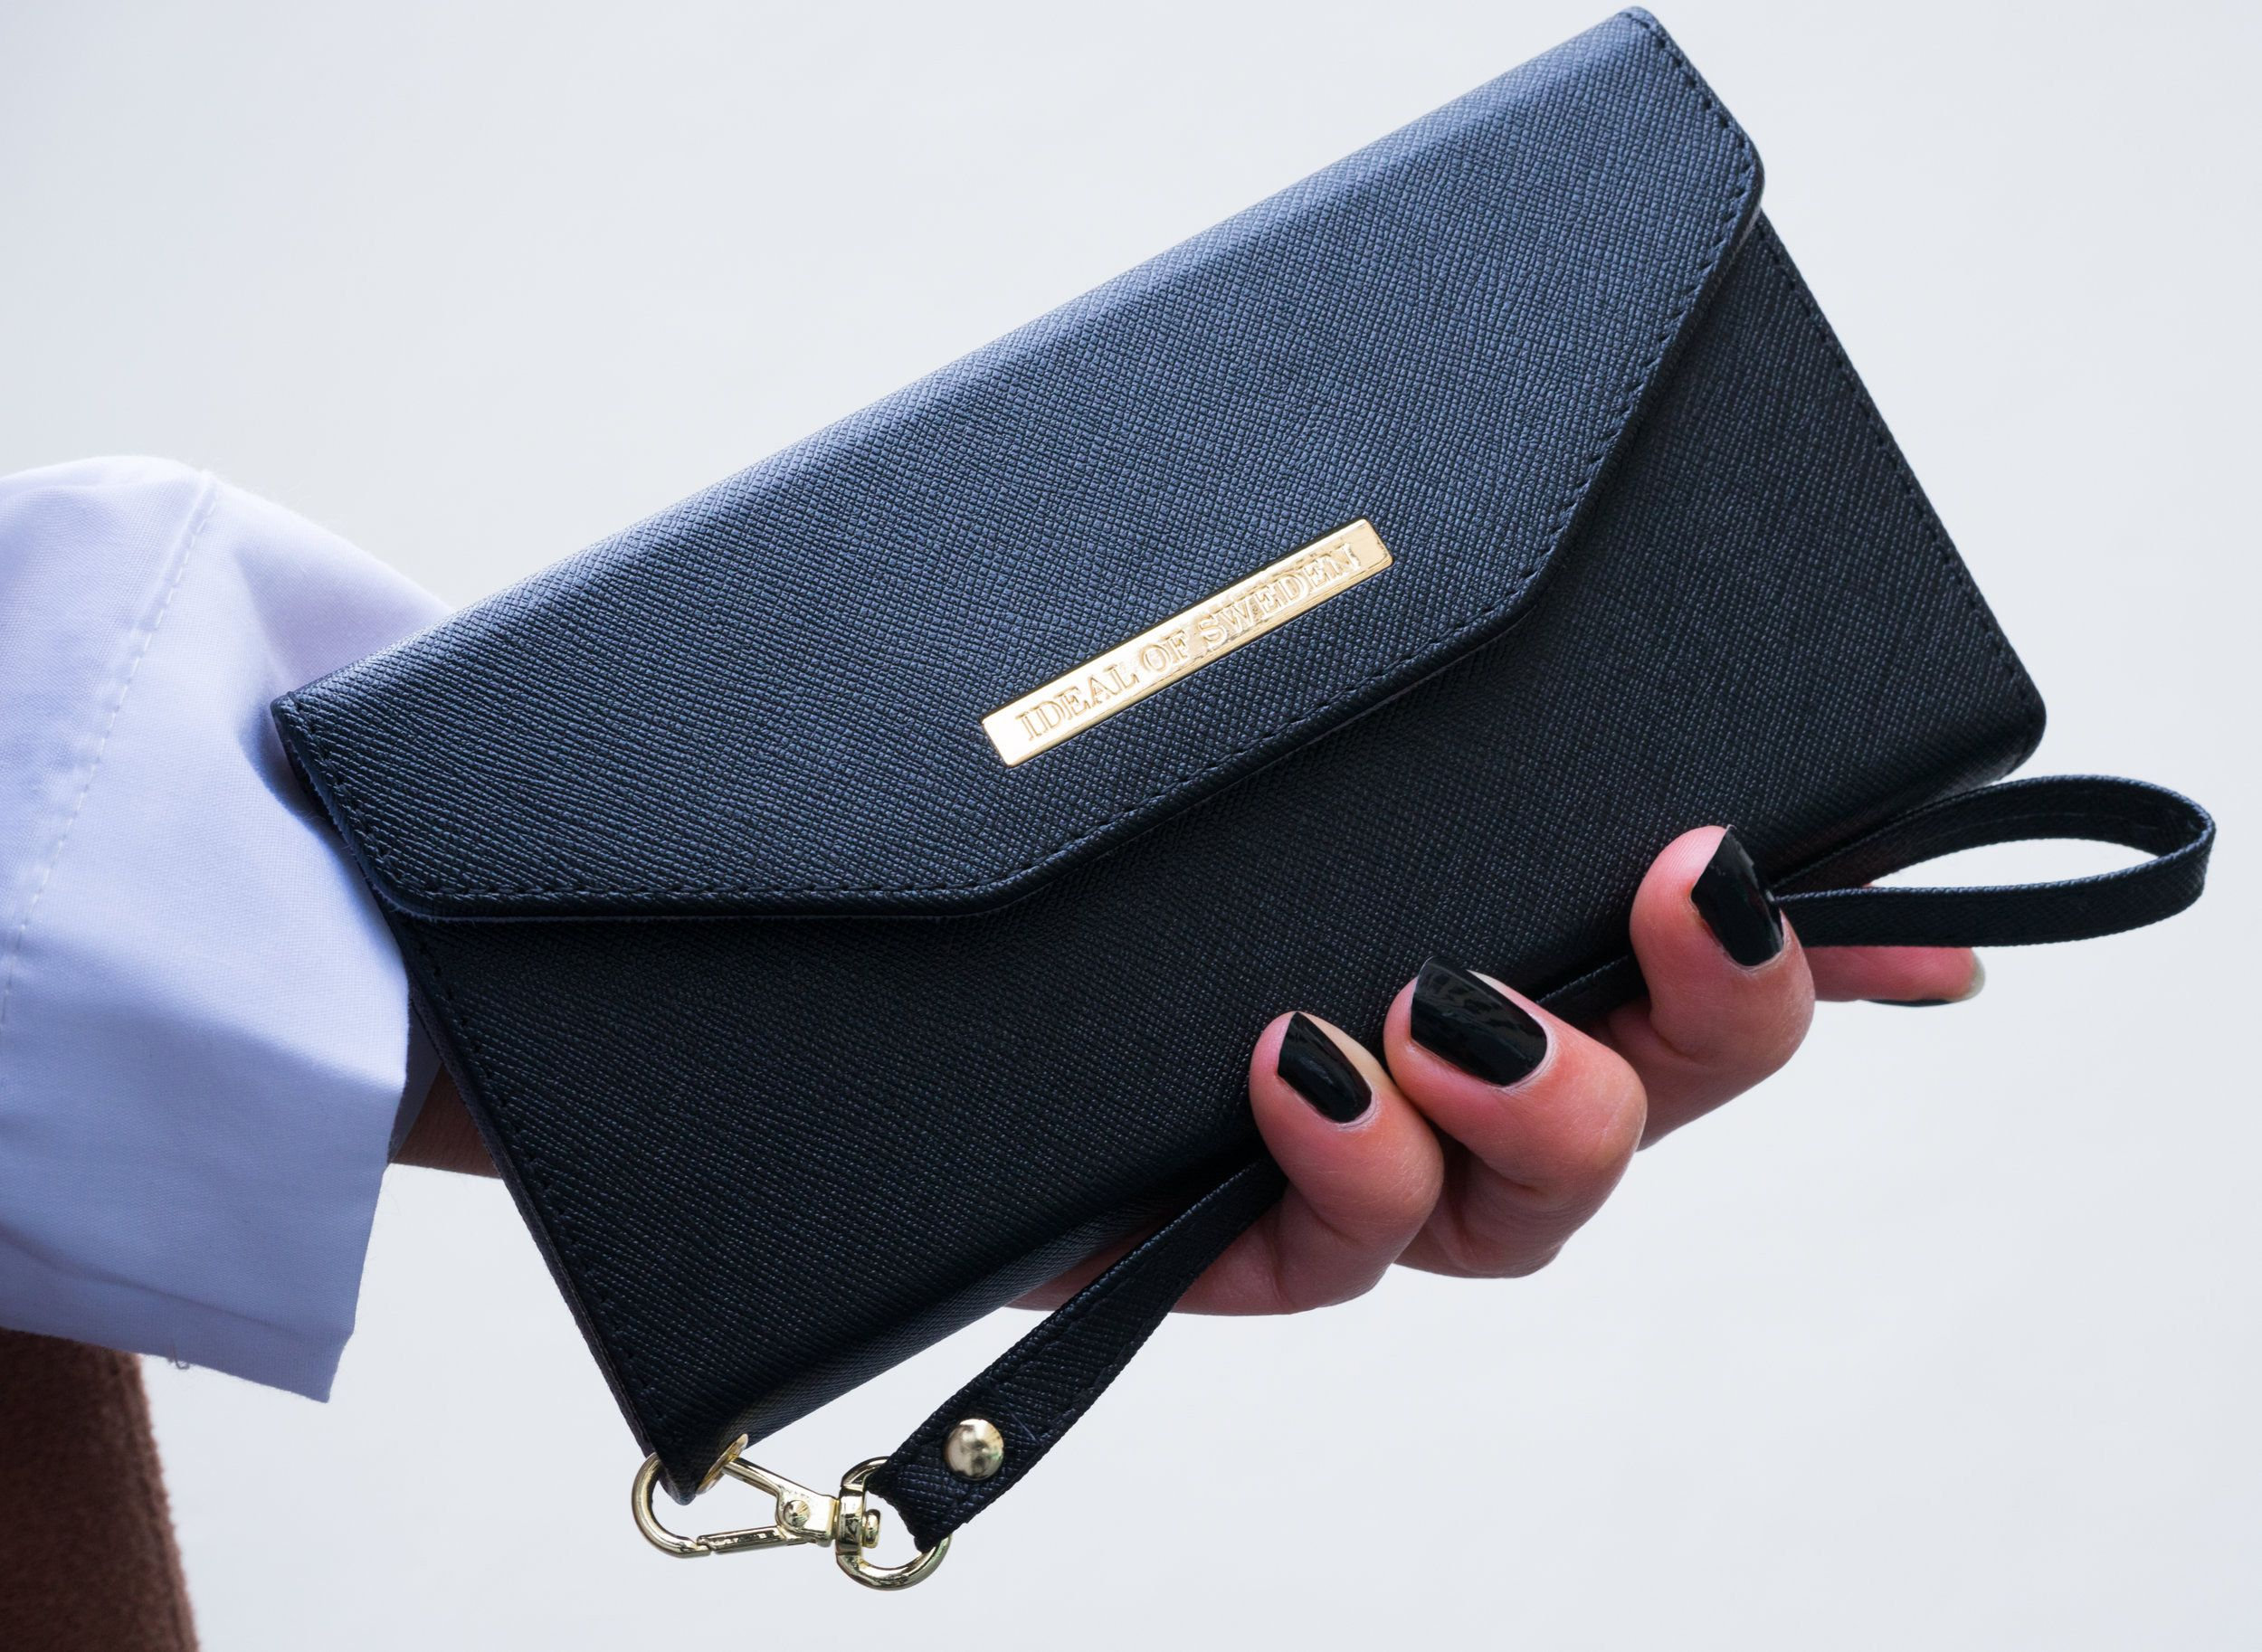 competitive price b3646 768bb Mayfair Clutch Navy' by lovely @besttrendsforlife - Fashion case ...